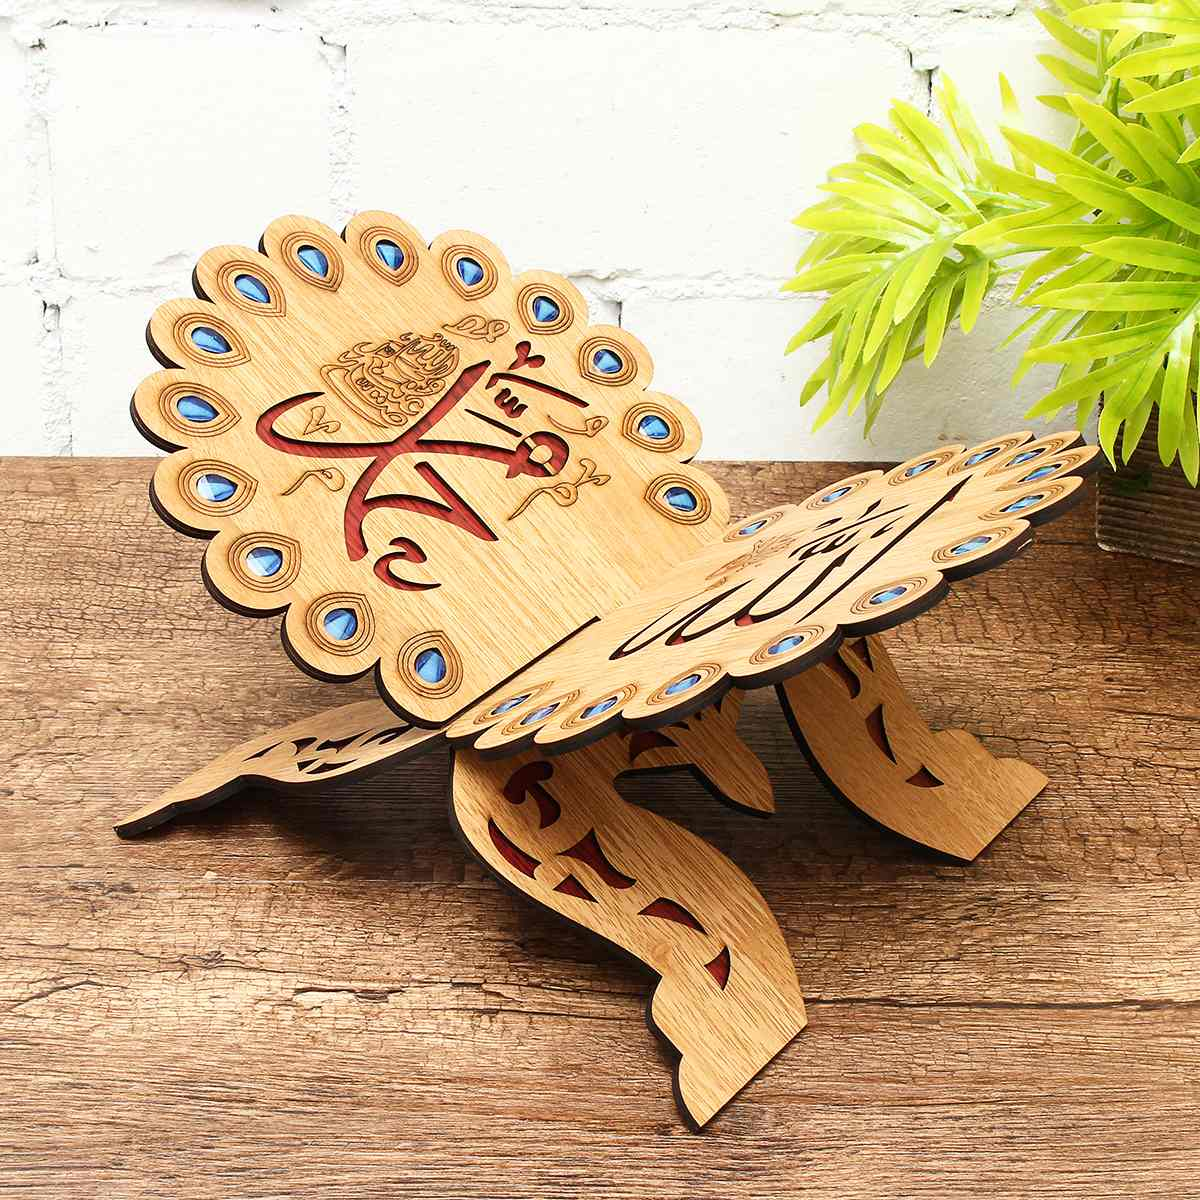 Bookends Office & School Supplies 33*23/30*20cm Removable Wooden Book Stand Holder Quran Muslim Ramadan Allah Islamic Gift Handmade Wood Decor Lightweight Sale Price